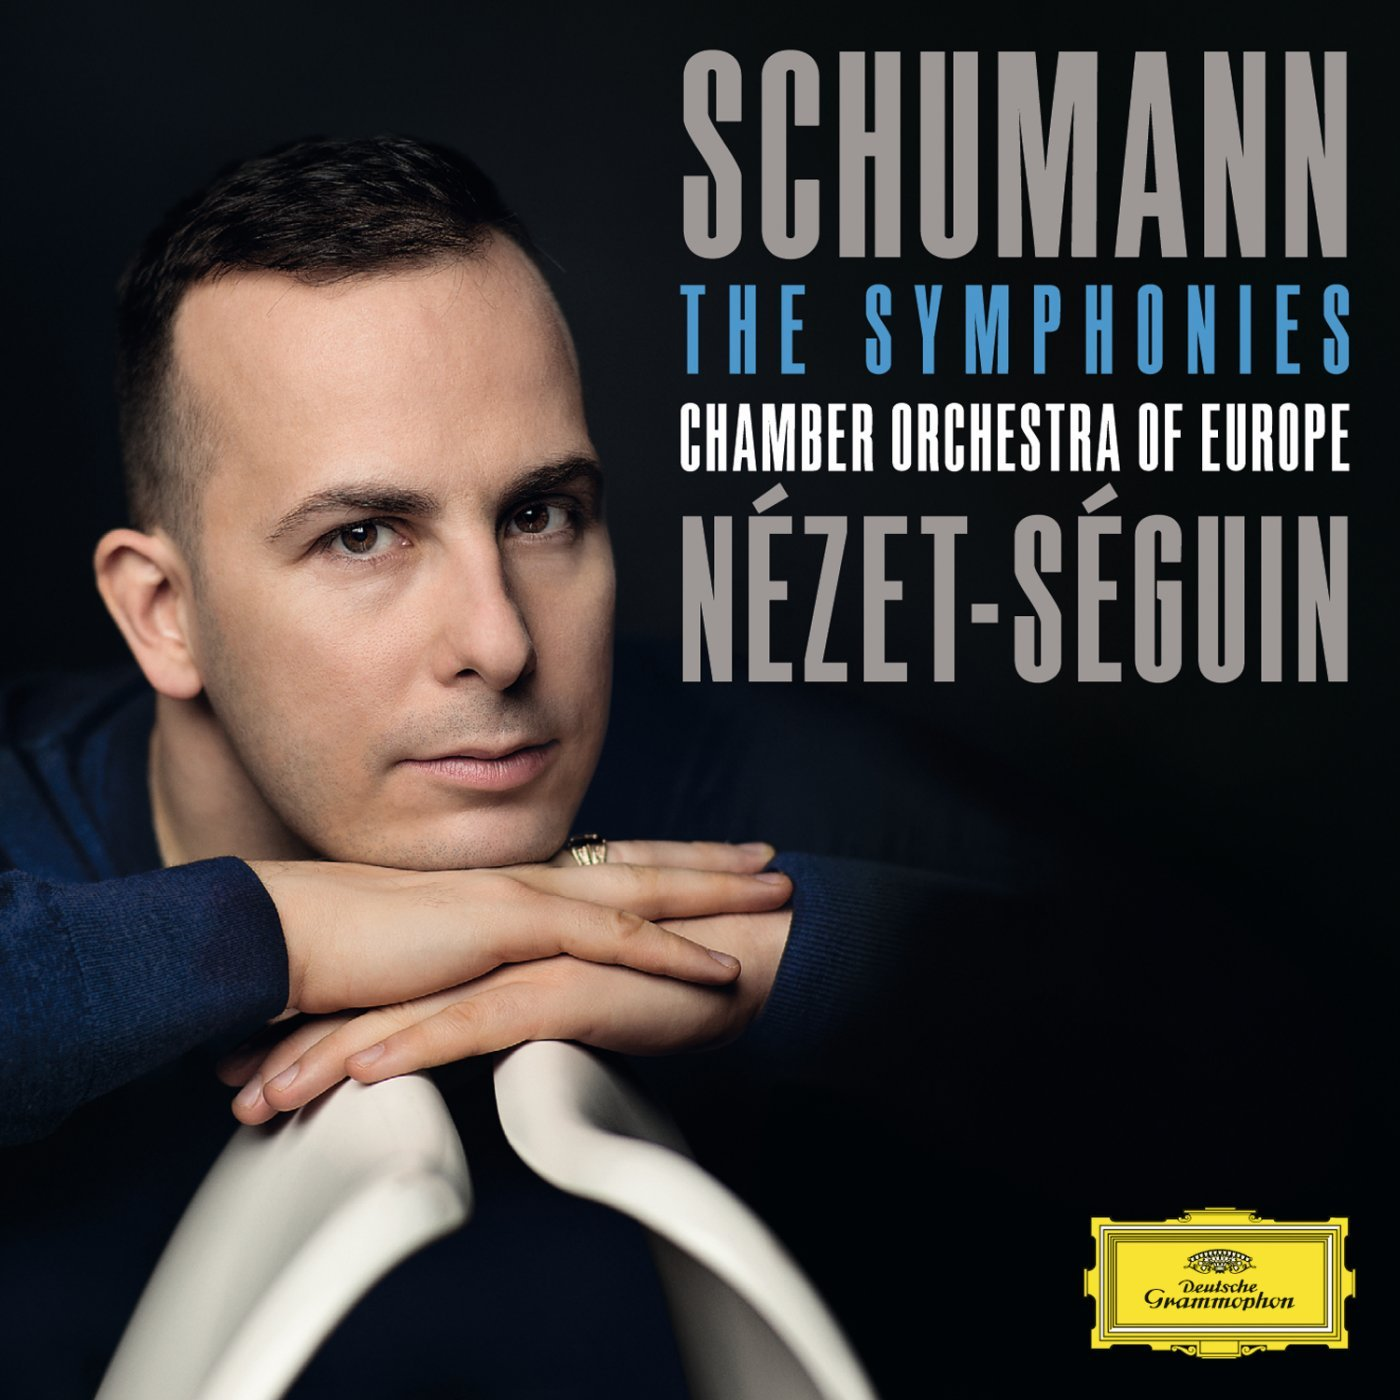 Yannick Nézet-Séguin & Chamber Orchestra of Europe